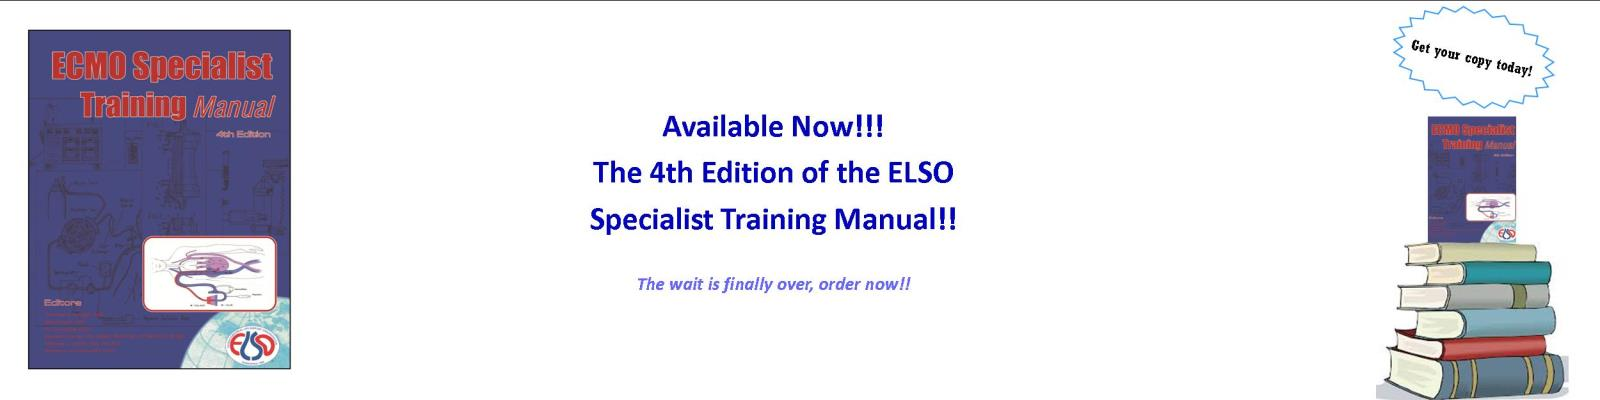 Specialist Training Manual 4th Edition'